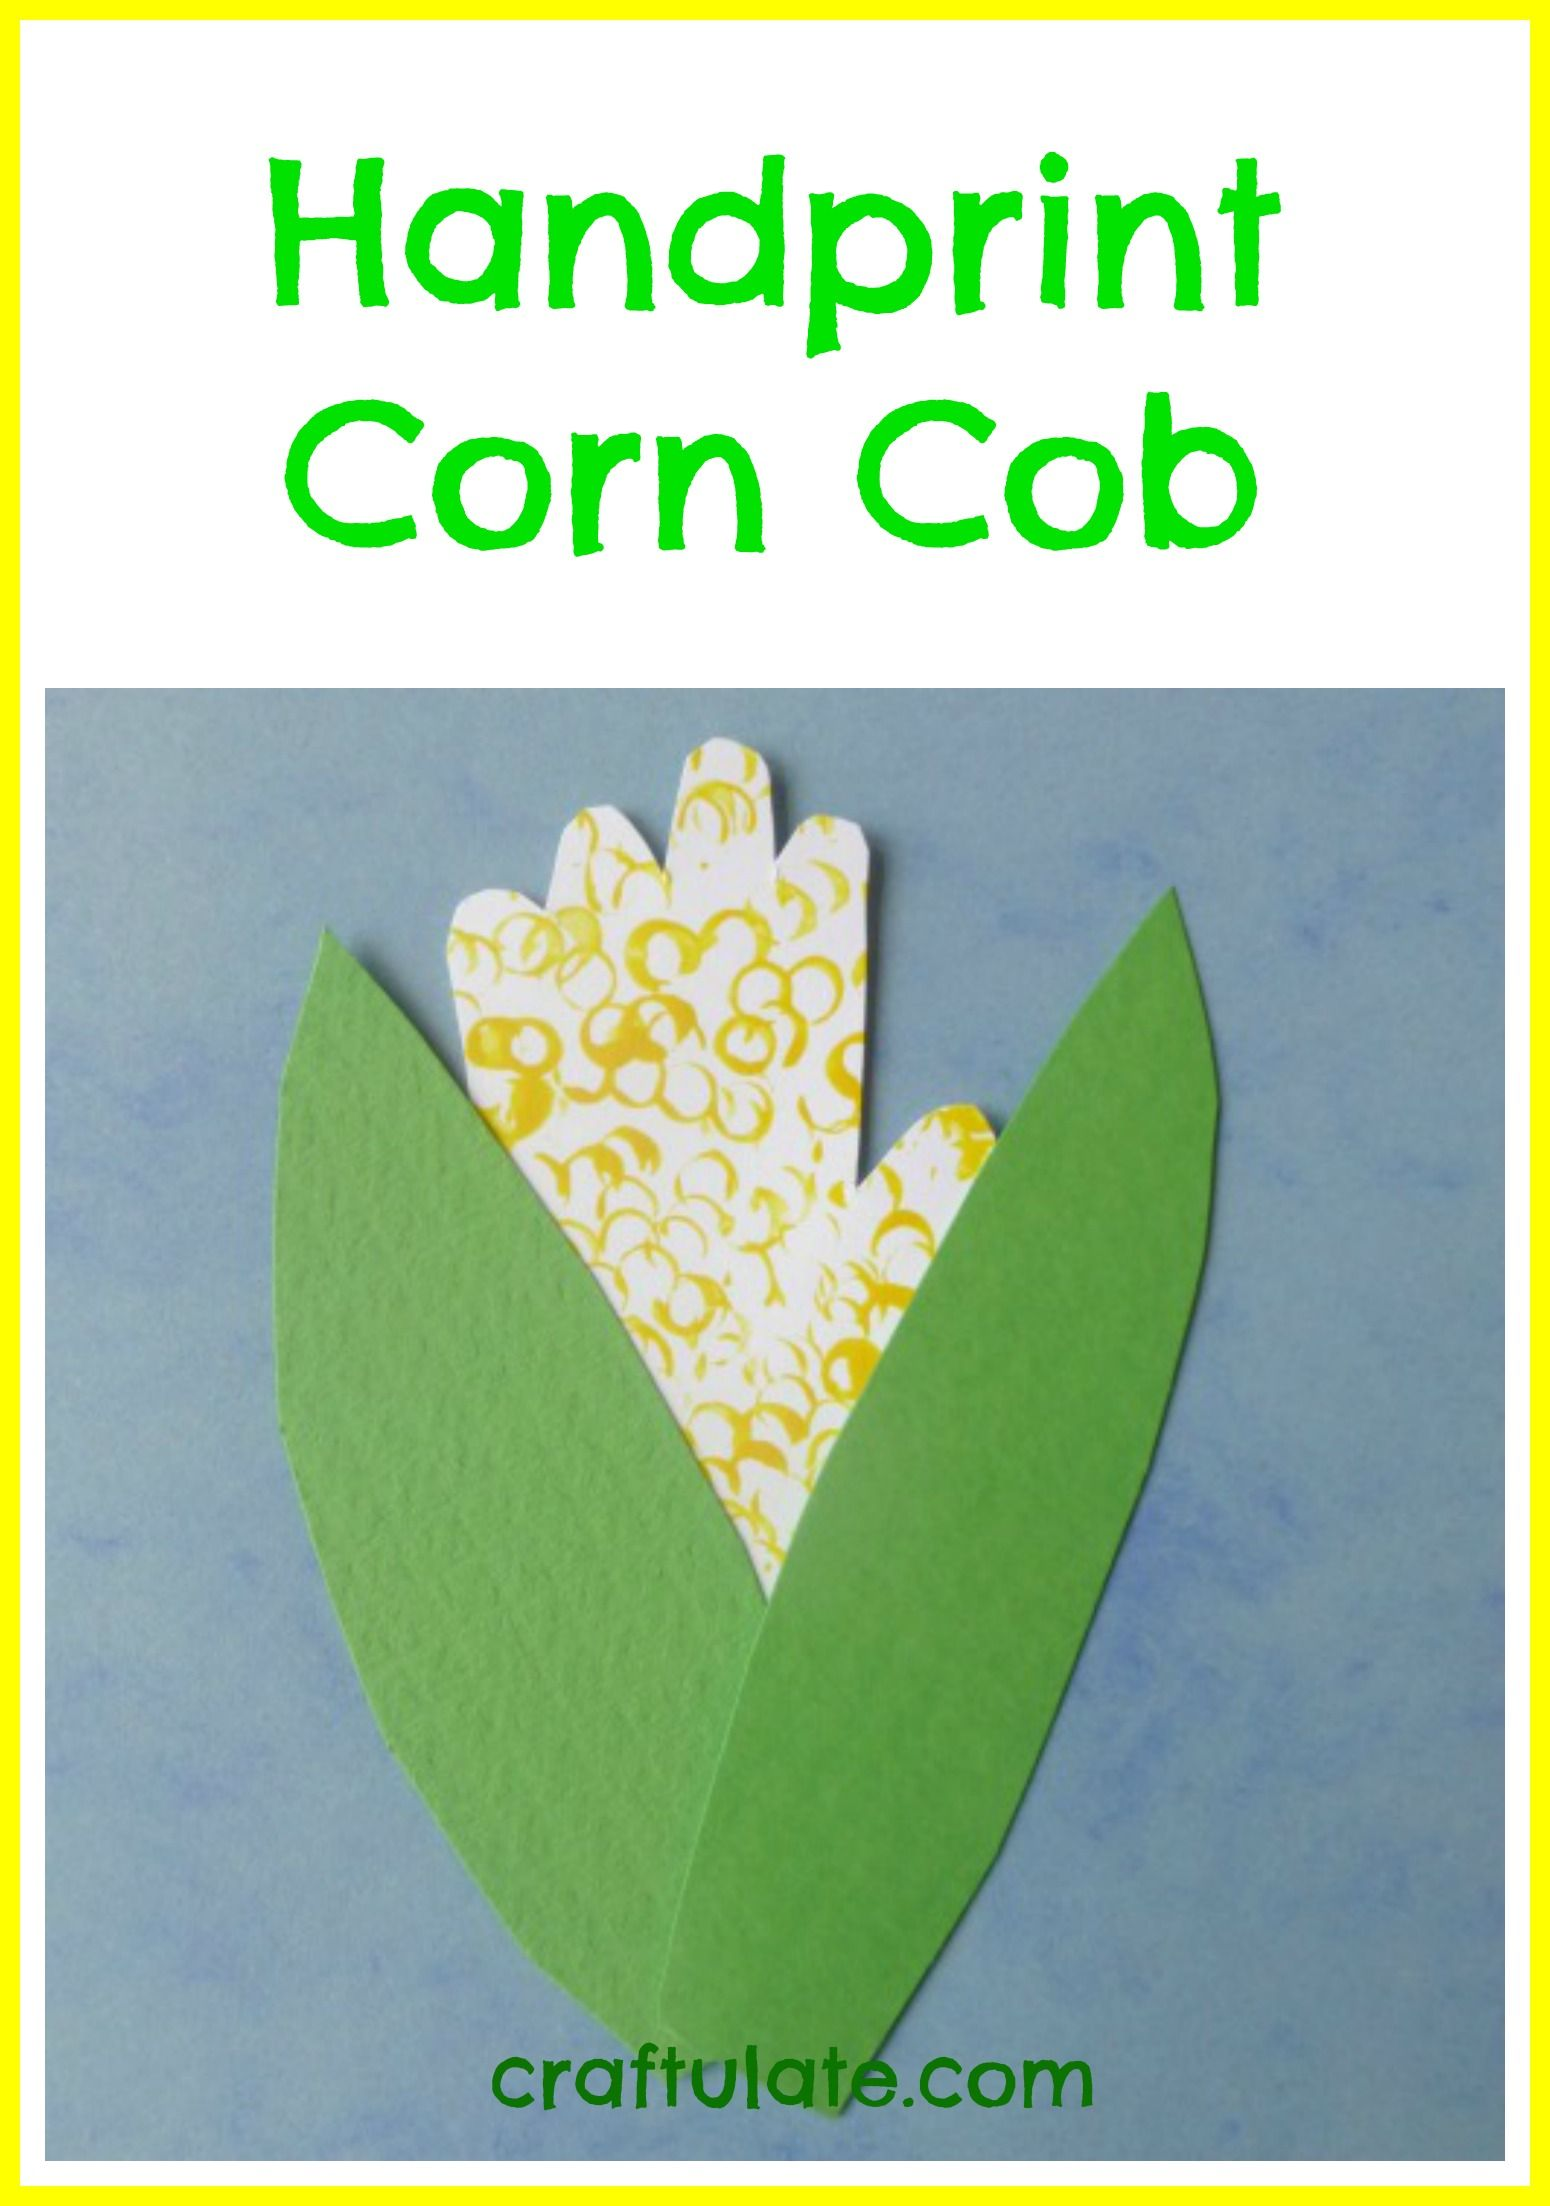 This Handprint Corn Cob Craft Is Made From Straw Prints A Handprint And Cardstock Perfect